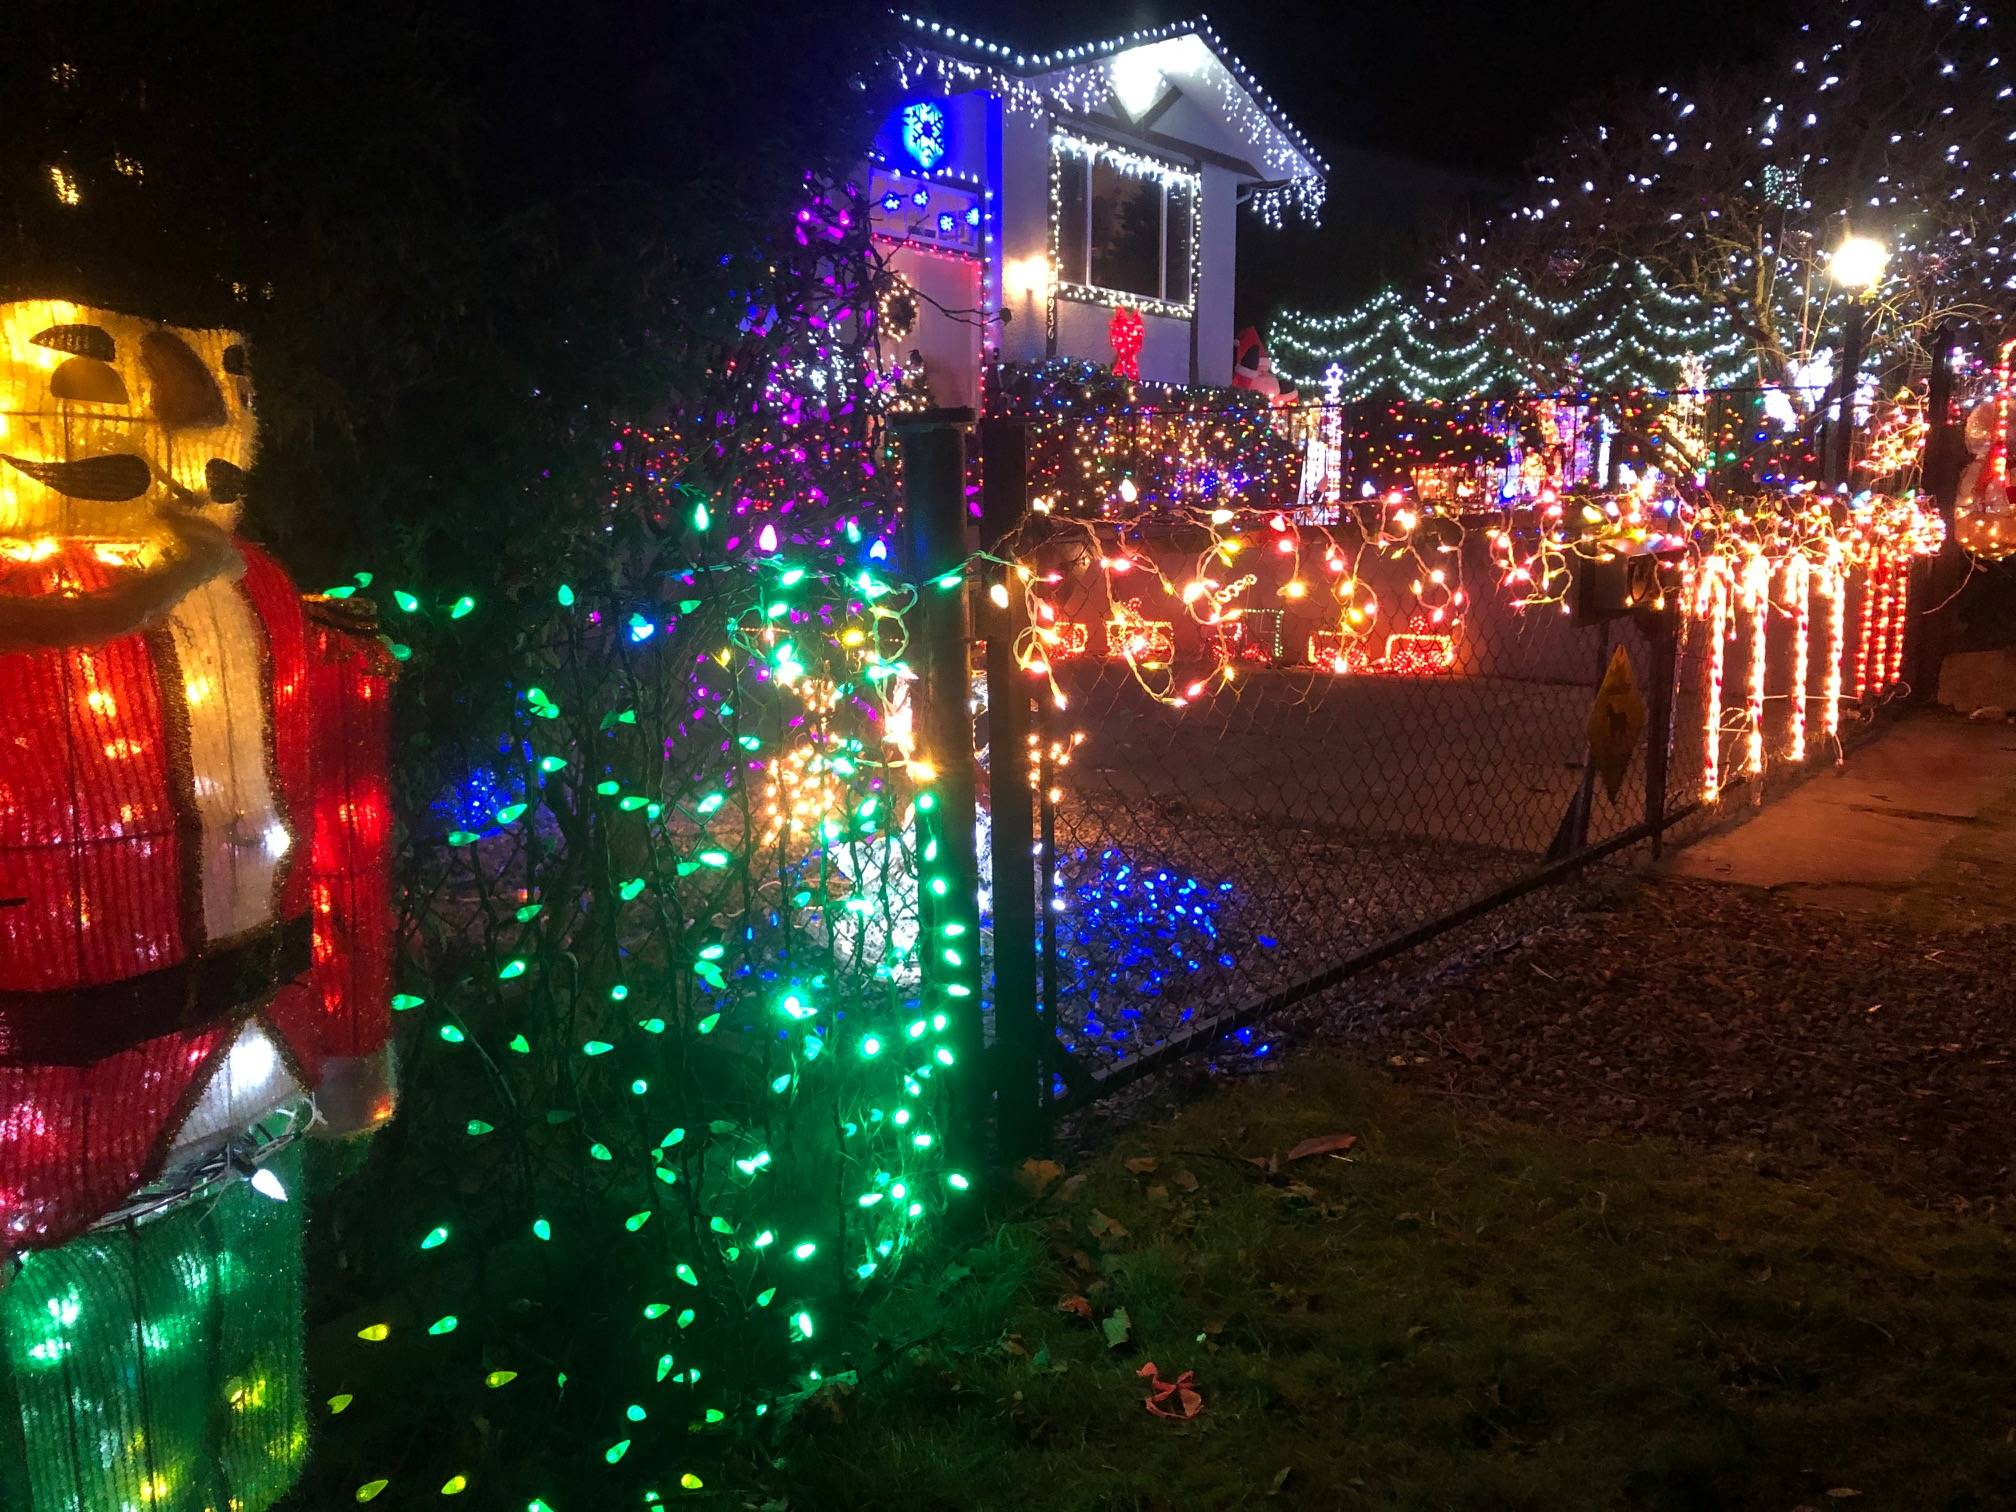 The Wejr family went all out for the holiday season and invite everyone to come see the decor at 26936 28A Ave. (Chris Wejr/Special to the Aldergrove Star)